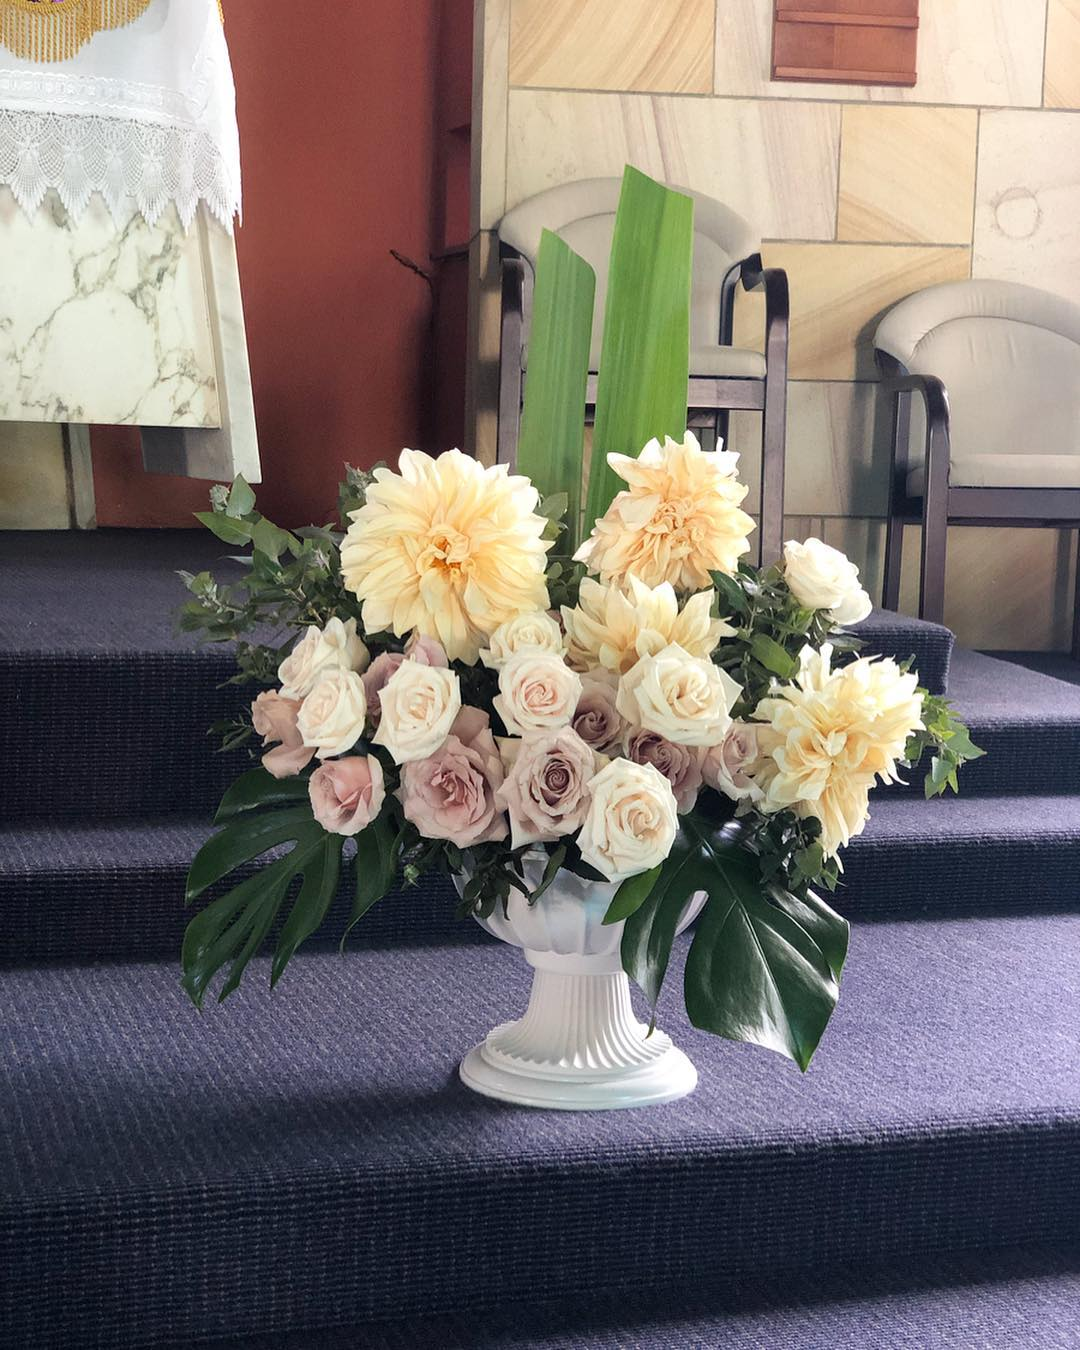 ceremony flowers in urn.jpg